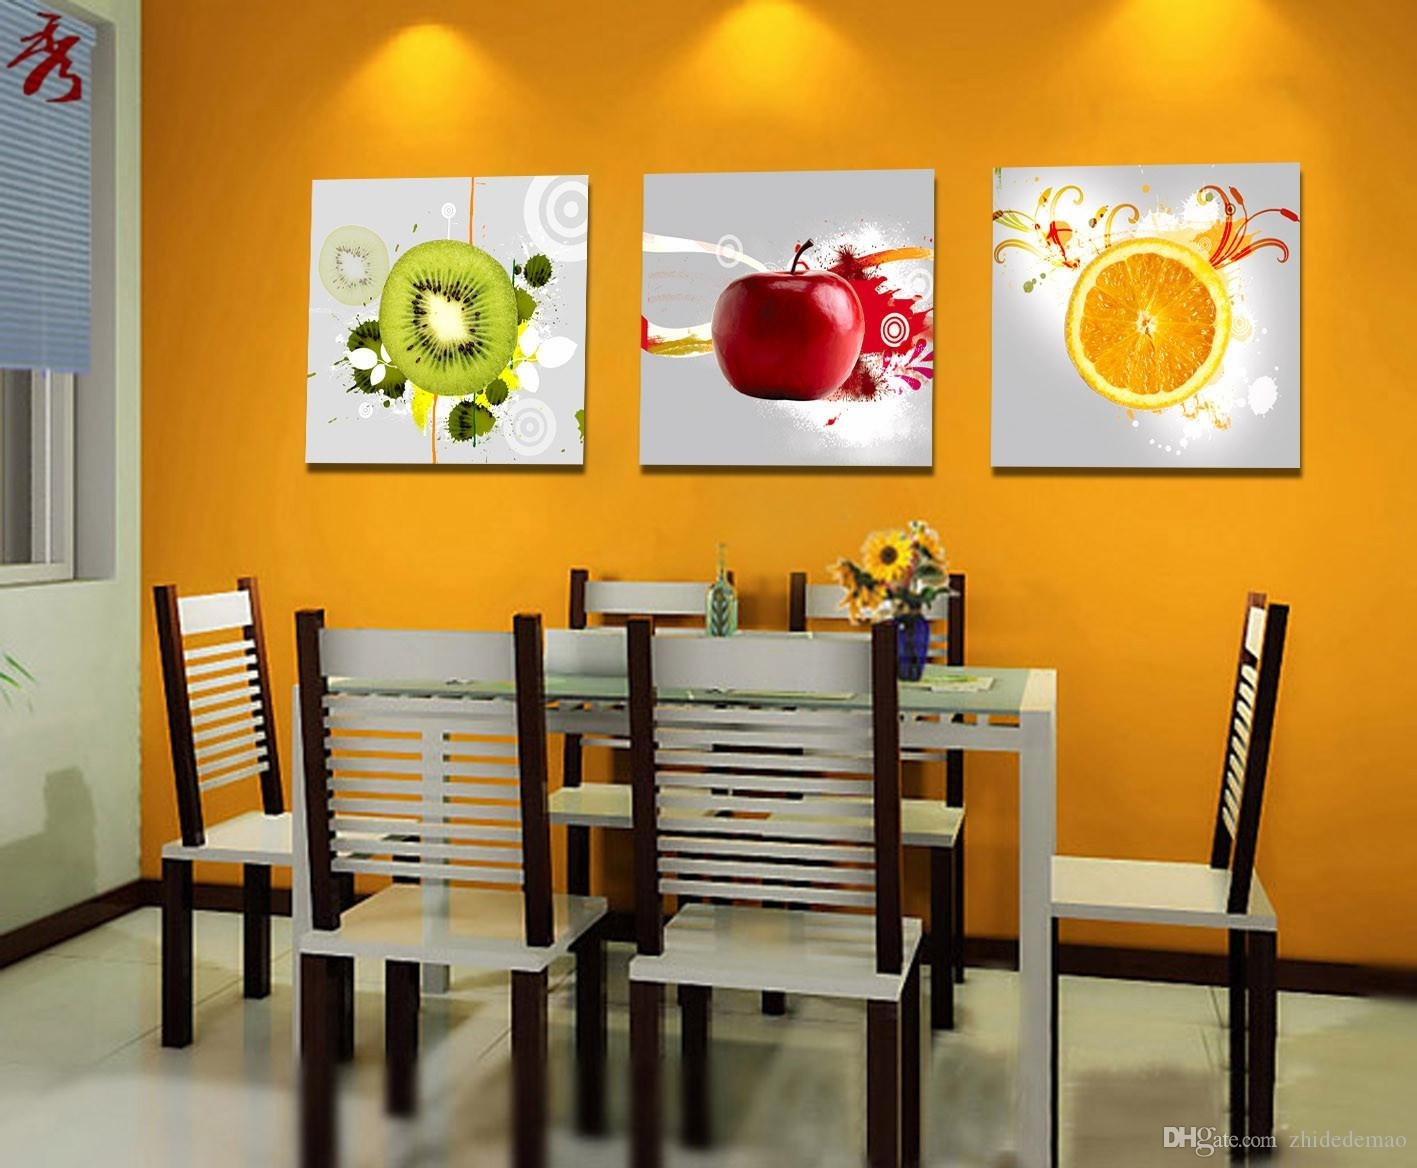 Canvas Wall Art For Dining Room – Alliancemv With Regard To Most Up To Date Canvas Wall Art For Dining Room (Gallery 6 of 15)